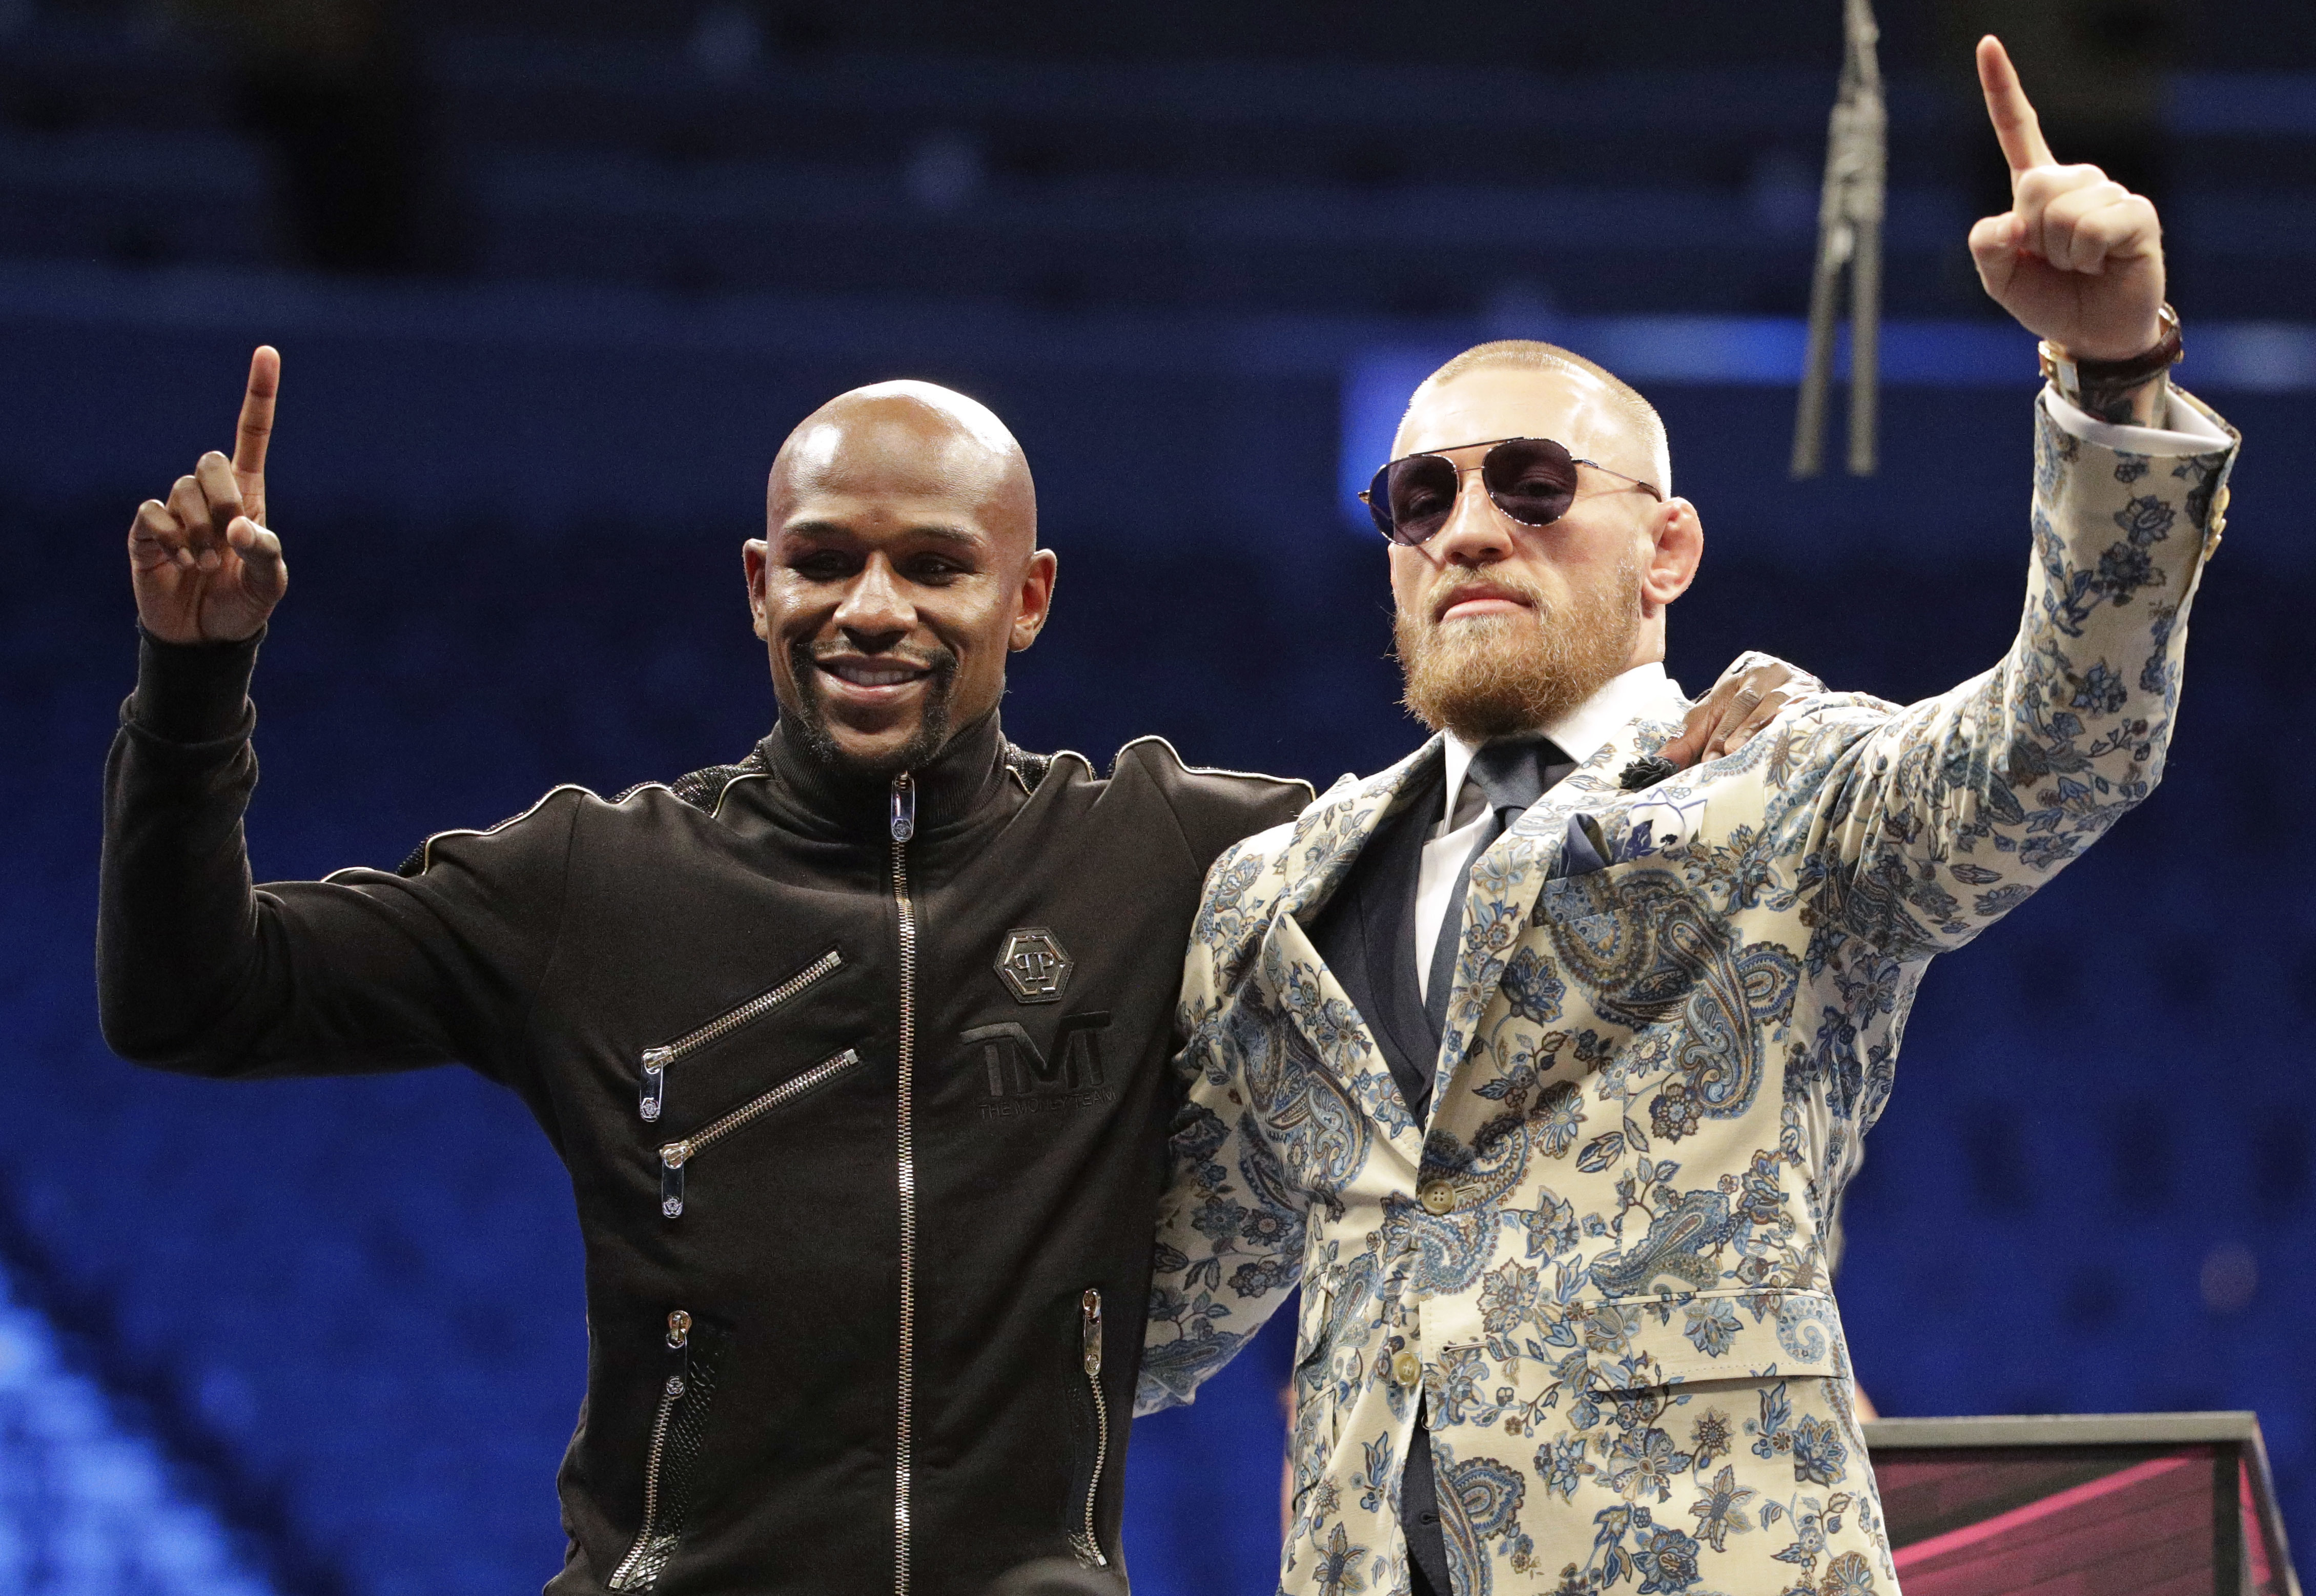 'Why Doesn't Floyd Mayweather Fight a Woman Next?' - Jim Lampley